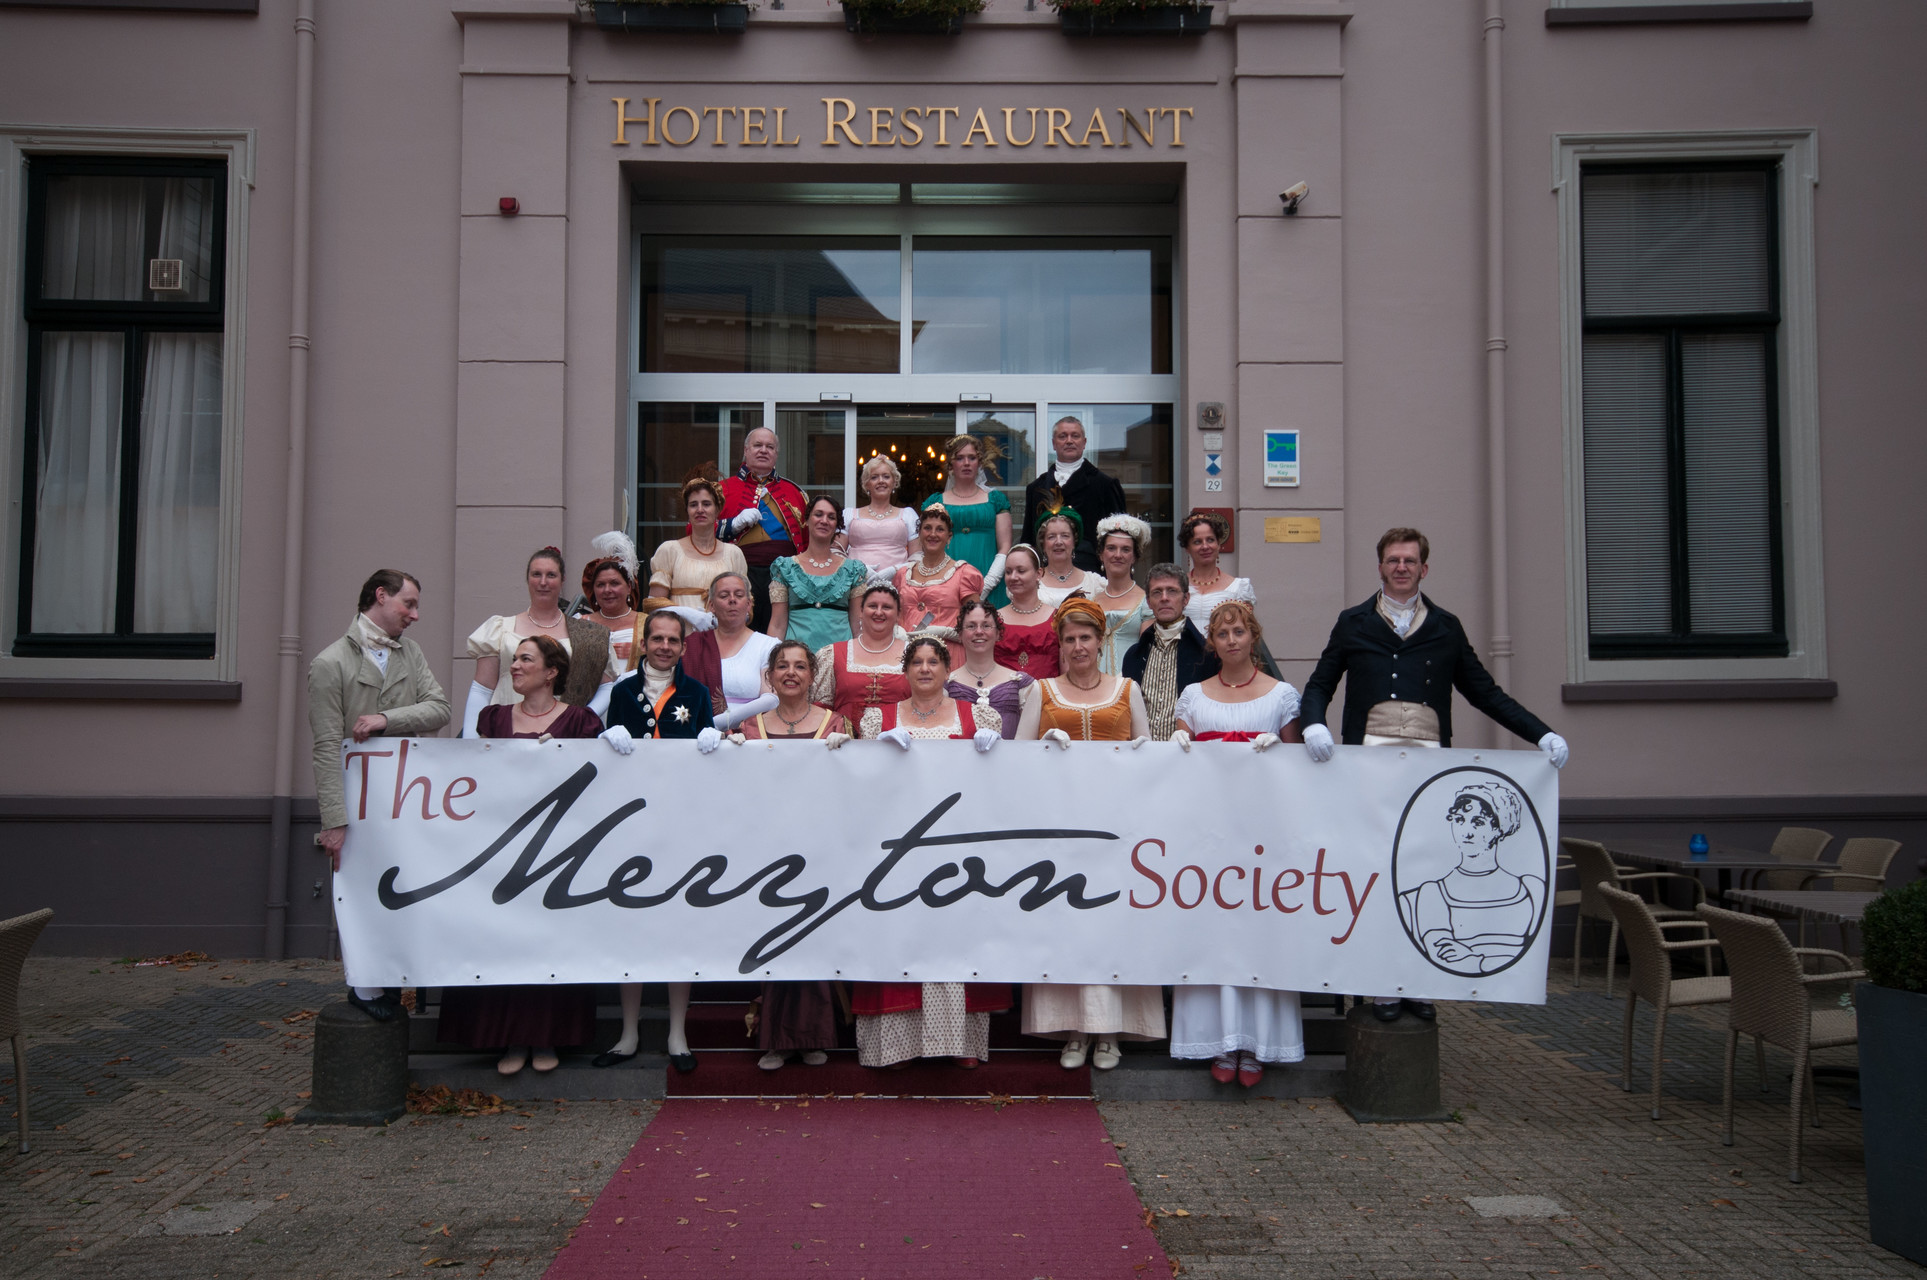 The Meryton Society